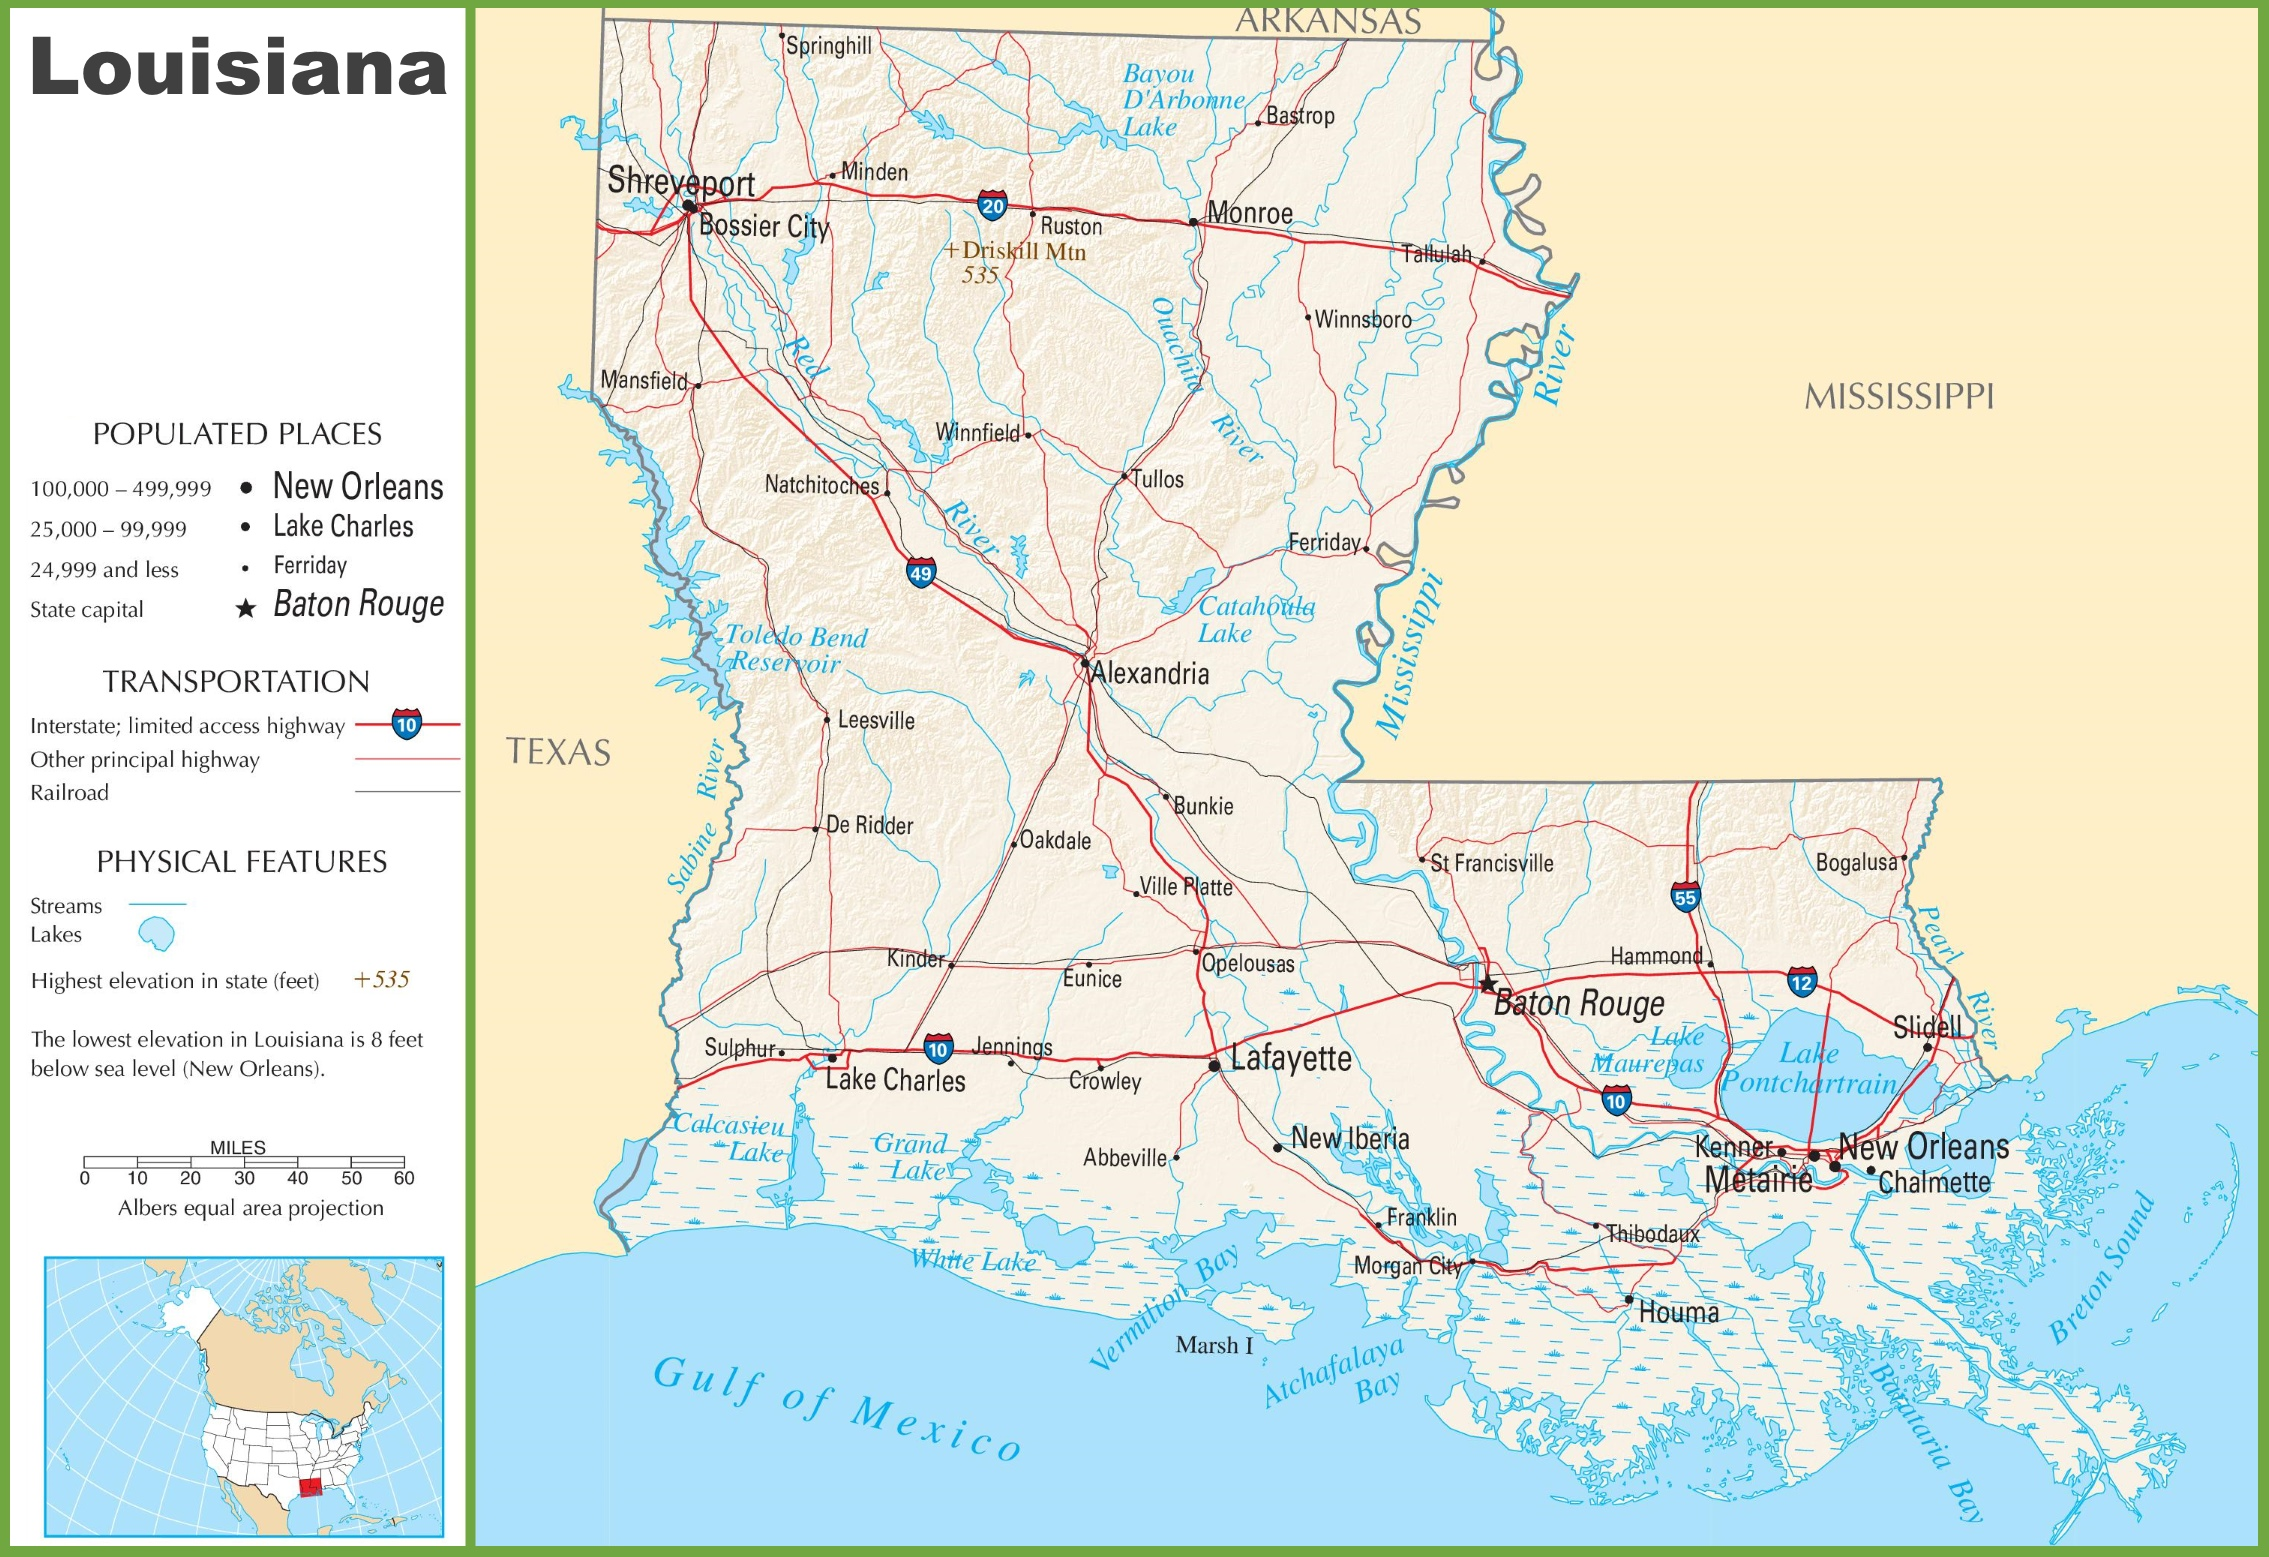 Louisiana Highway Map Louisiana highway map